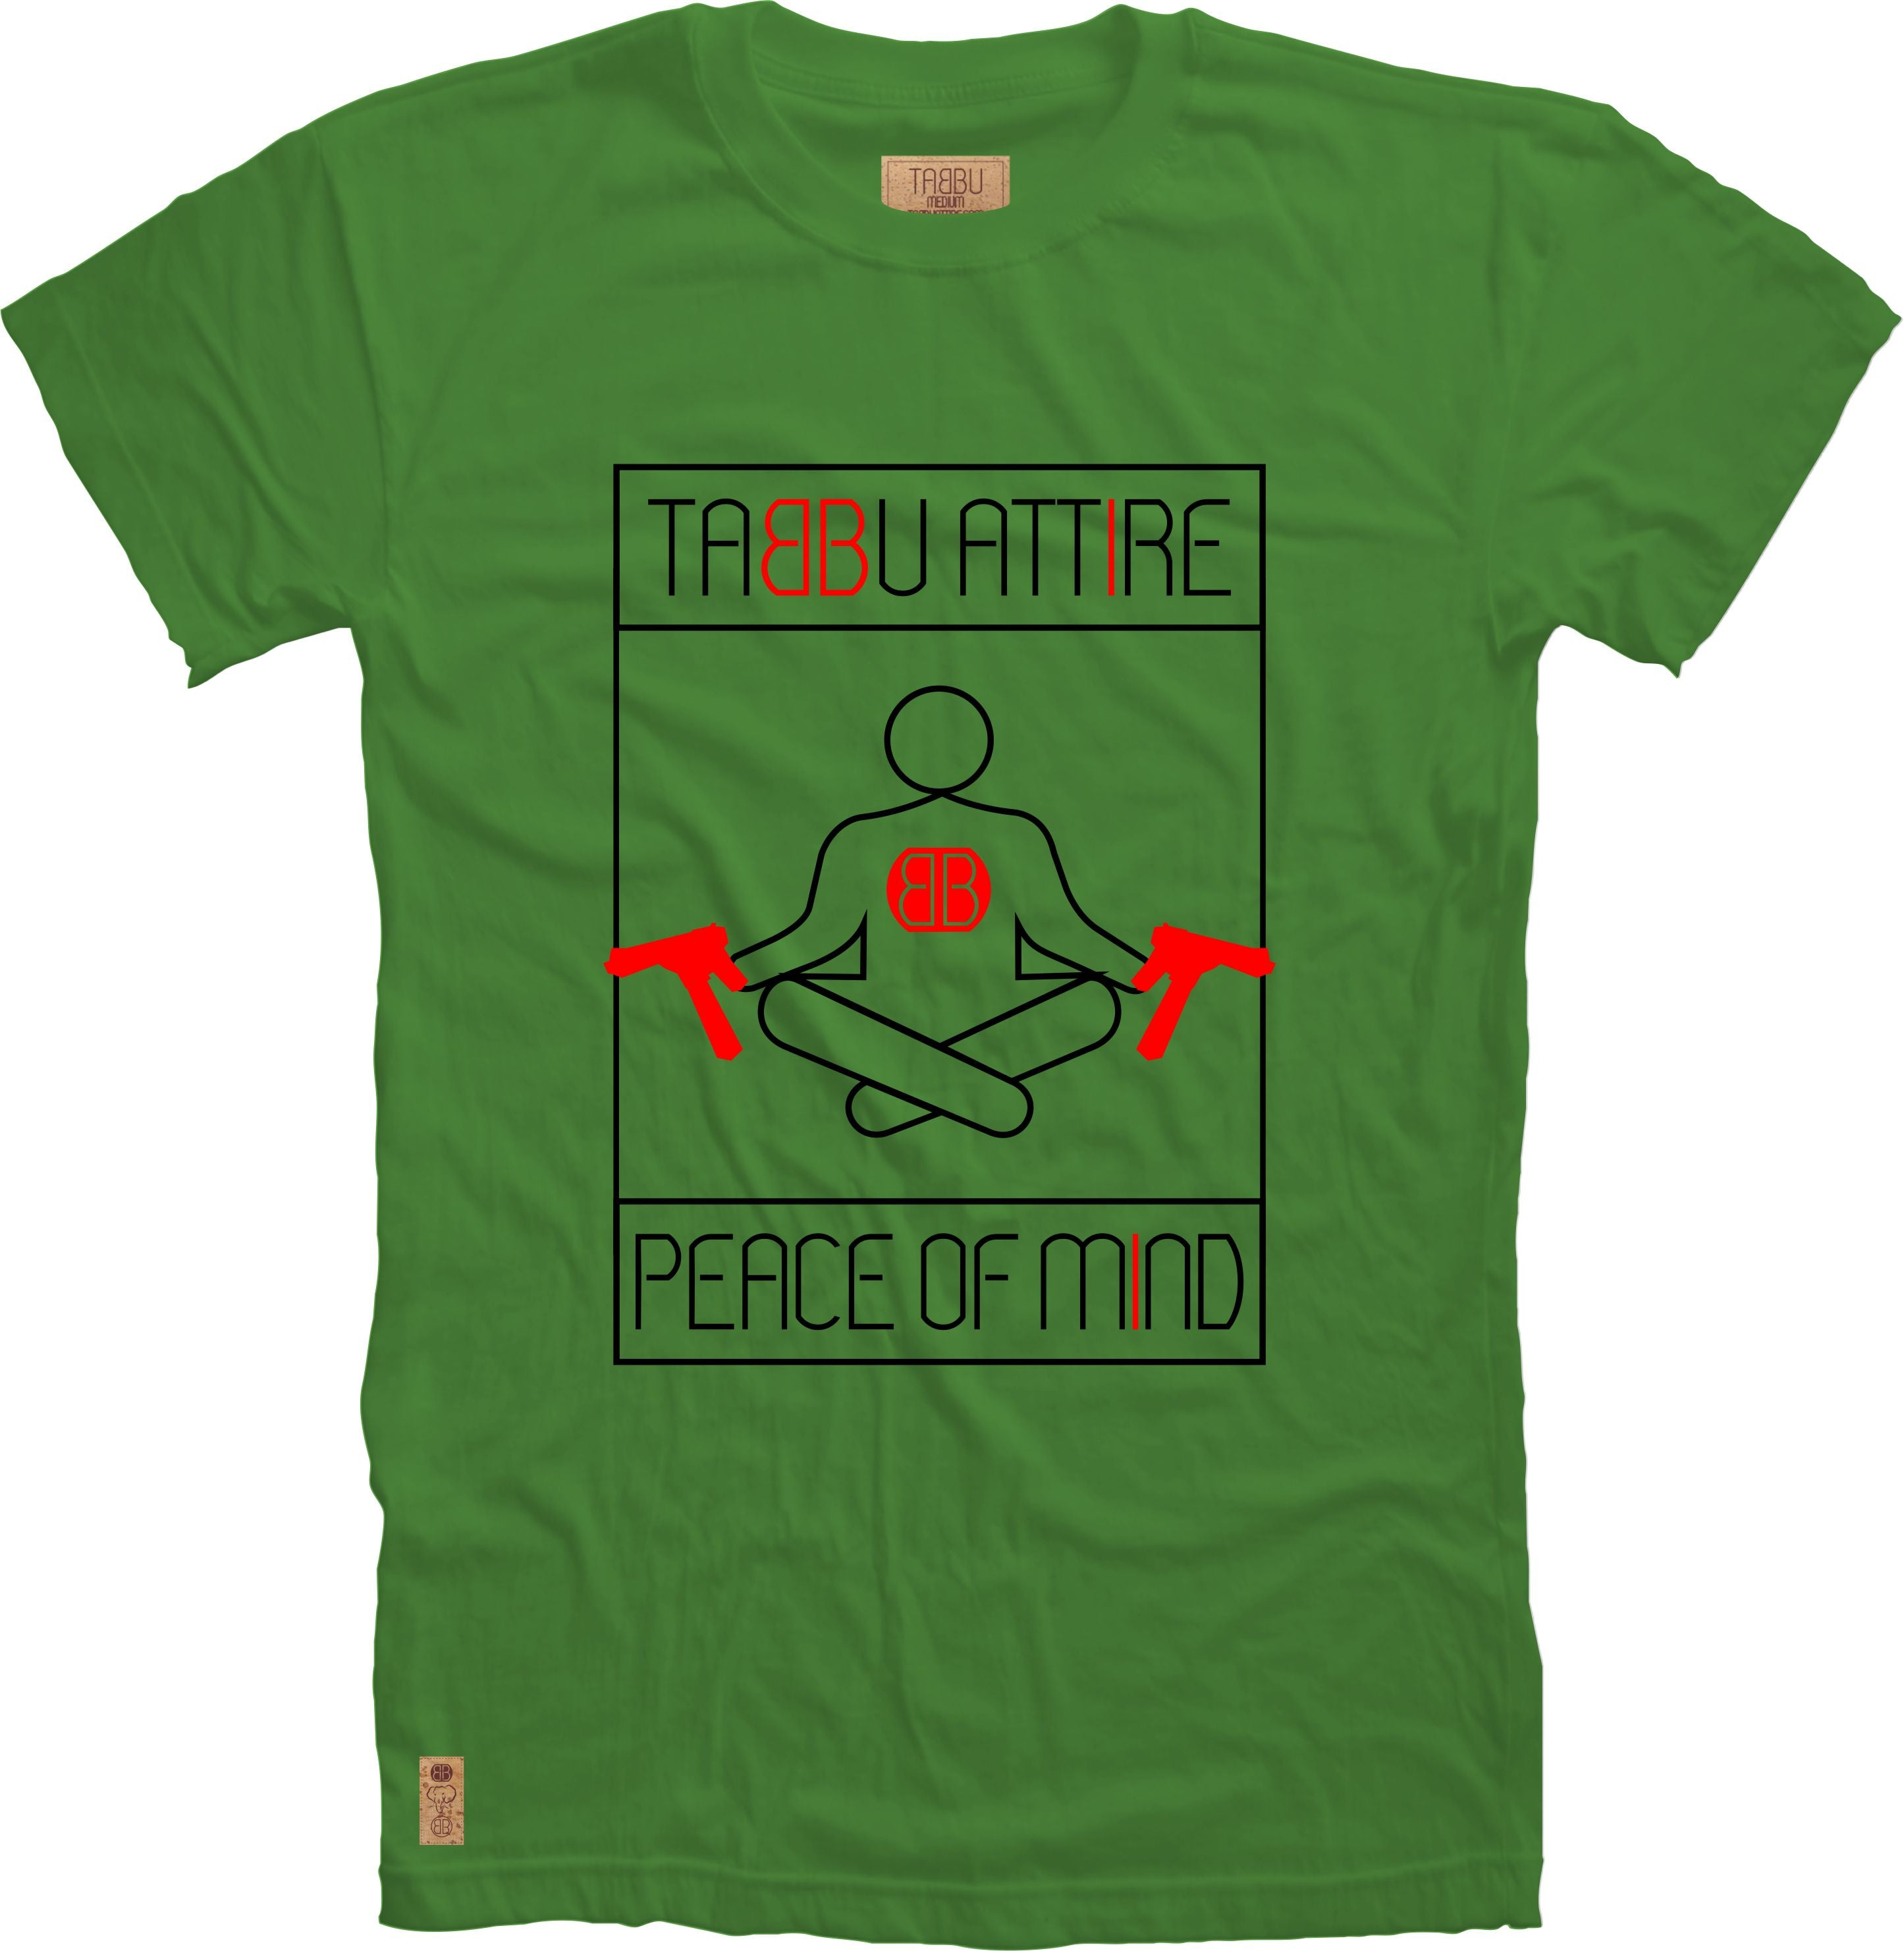 Peace of Mind Crewneck Tee in Green